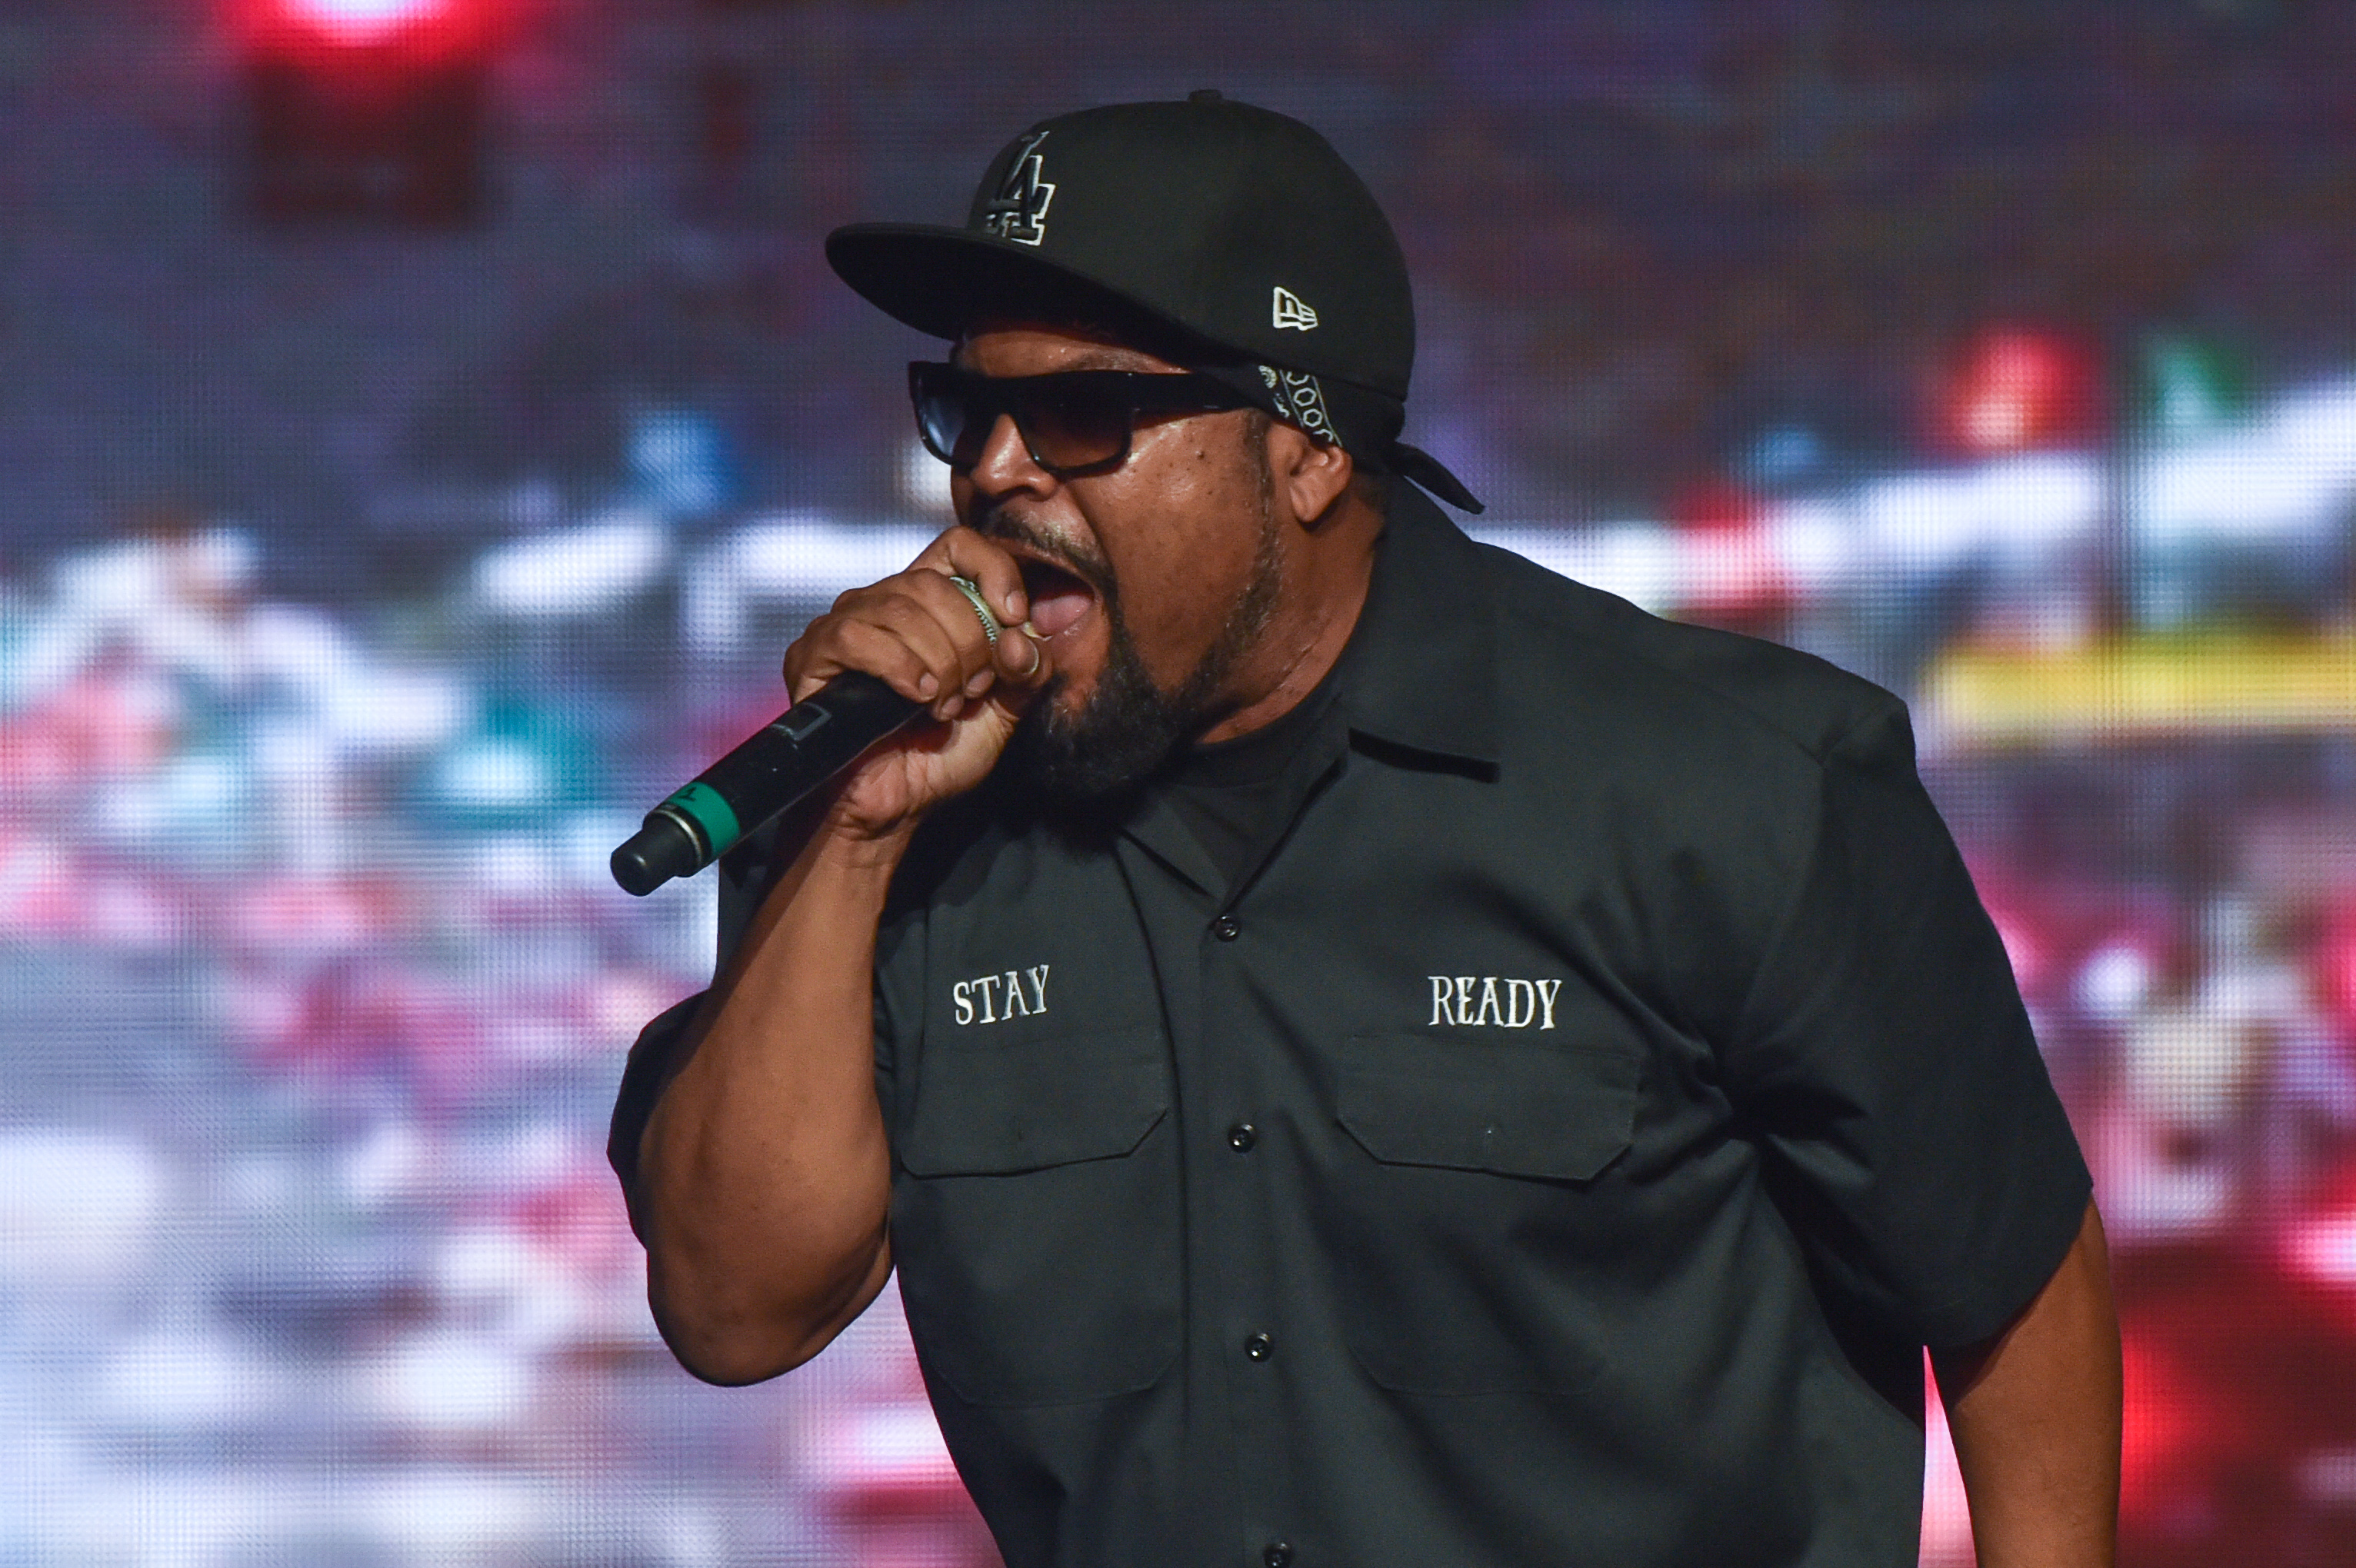 The Takeover Featuring Ice Cube & Too Short - Detroit, MI